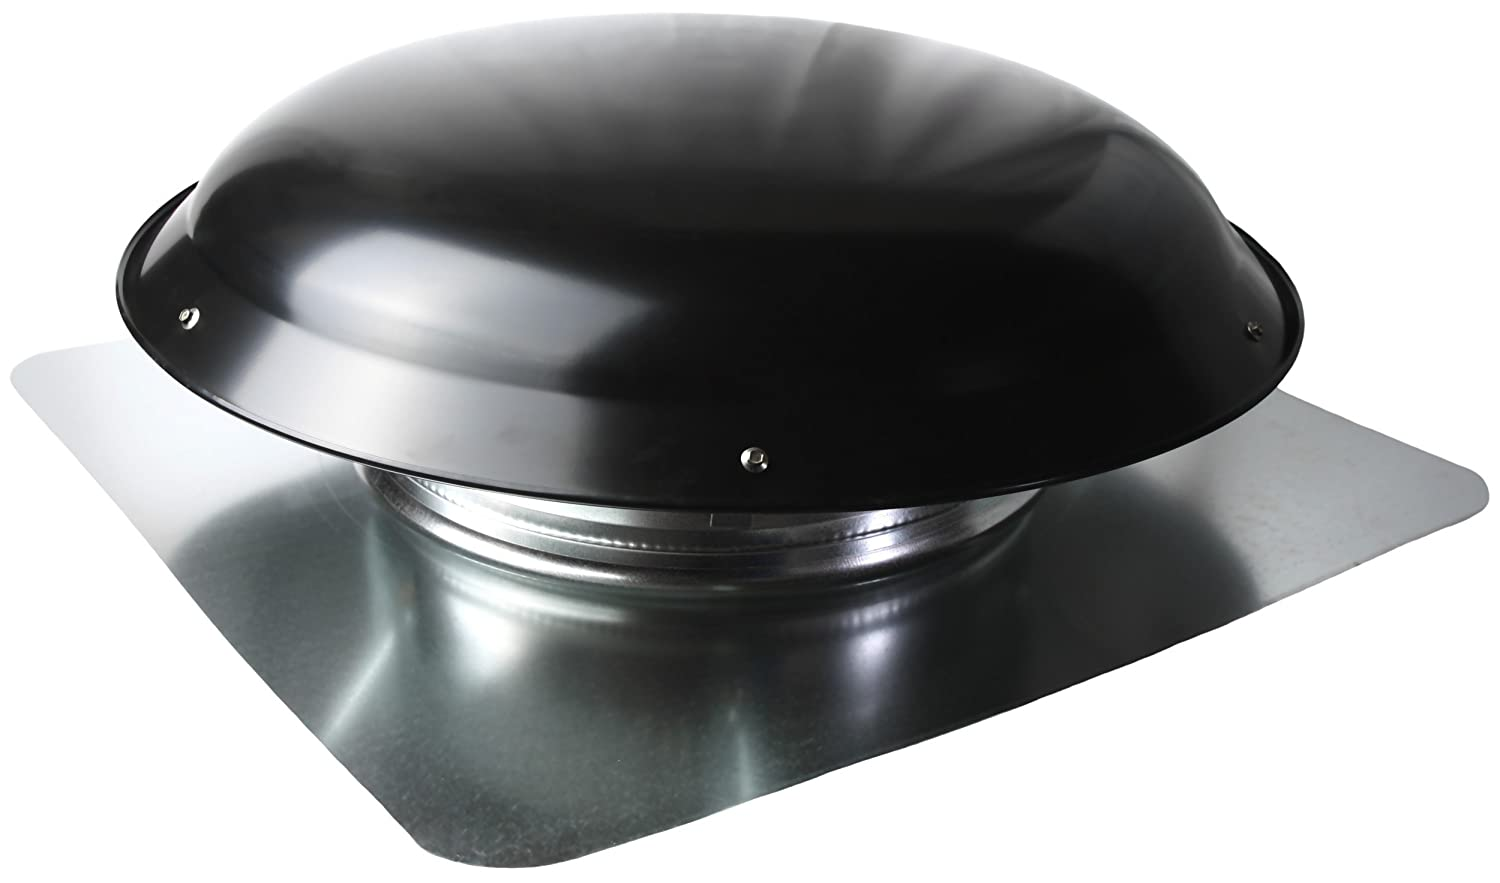 Black Ventamatic Cool Attic CX1000AMBLUPS Power Roof Galvanized Steel Vent Dome with 3.4 Amp Motor